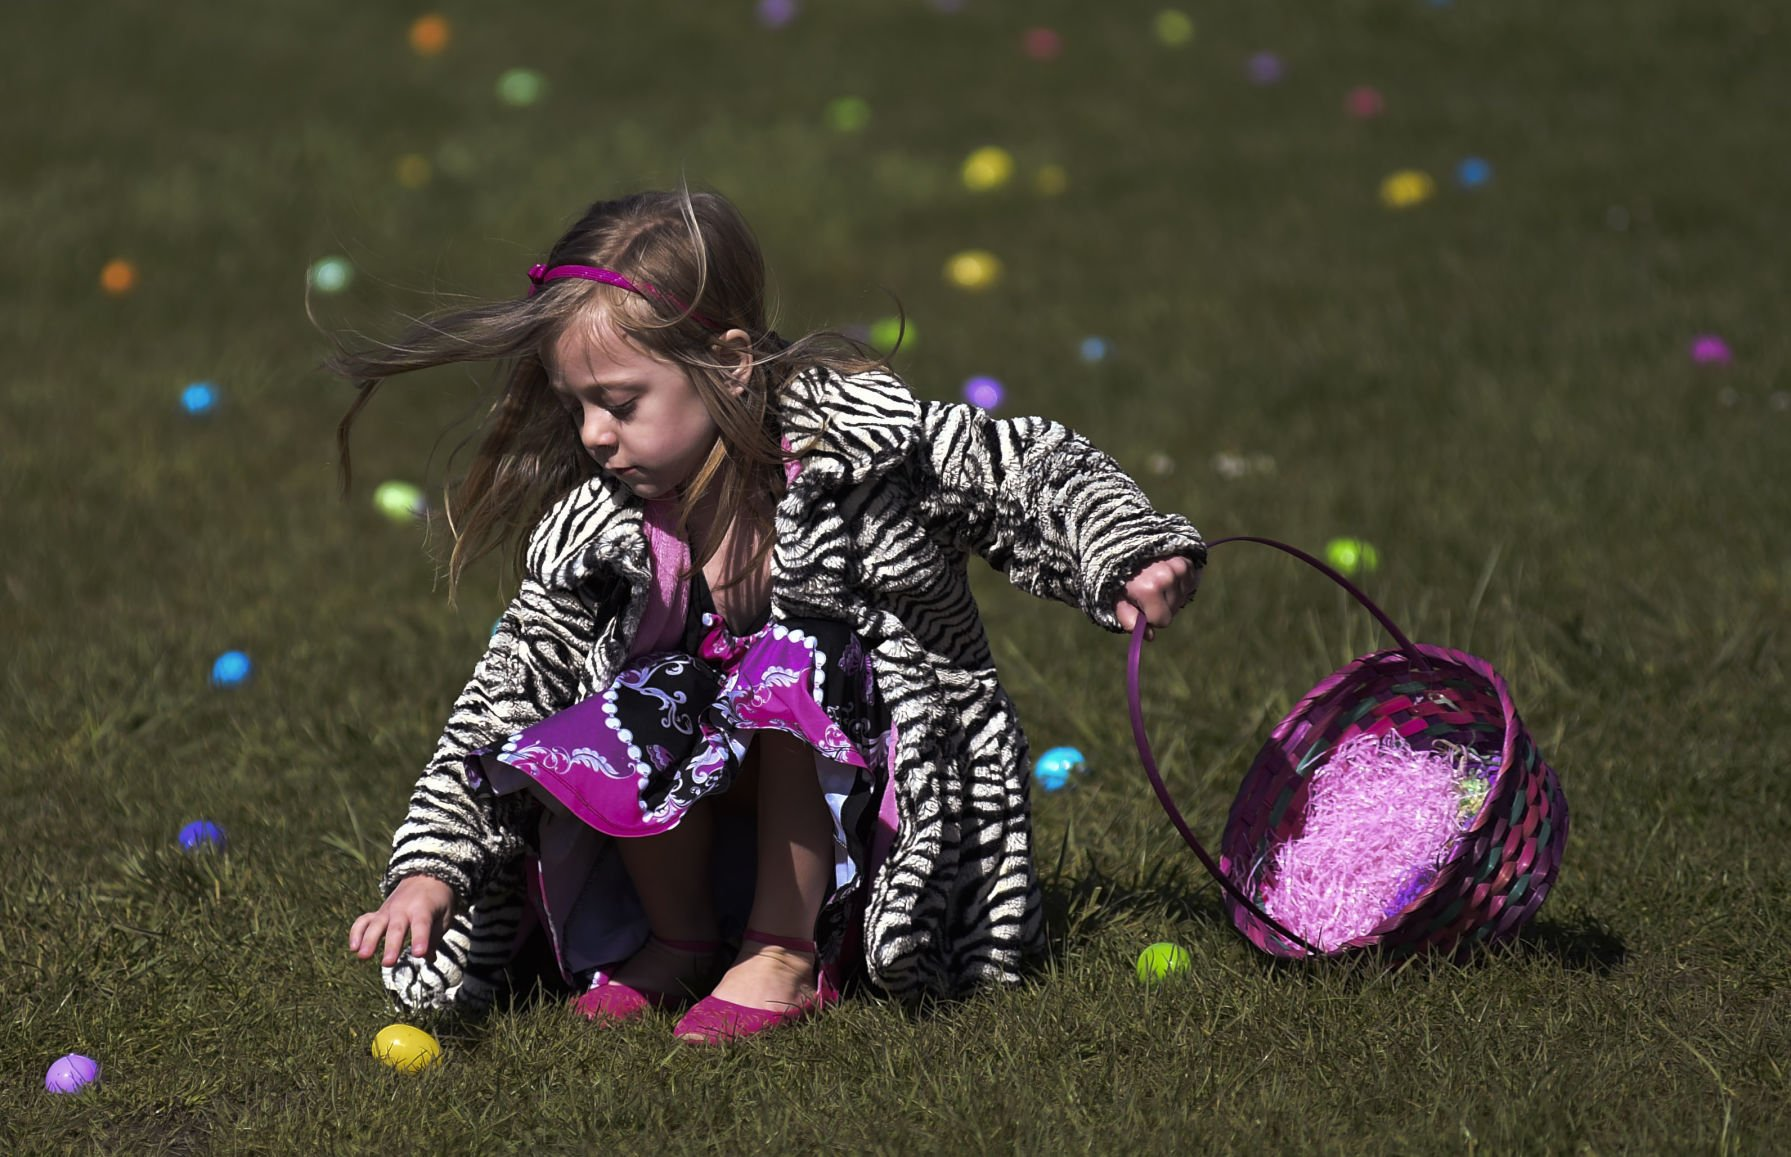 Easter at Coolidge Park attracts thousands